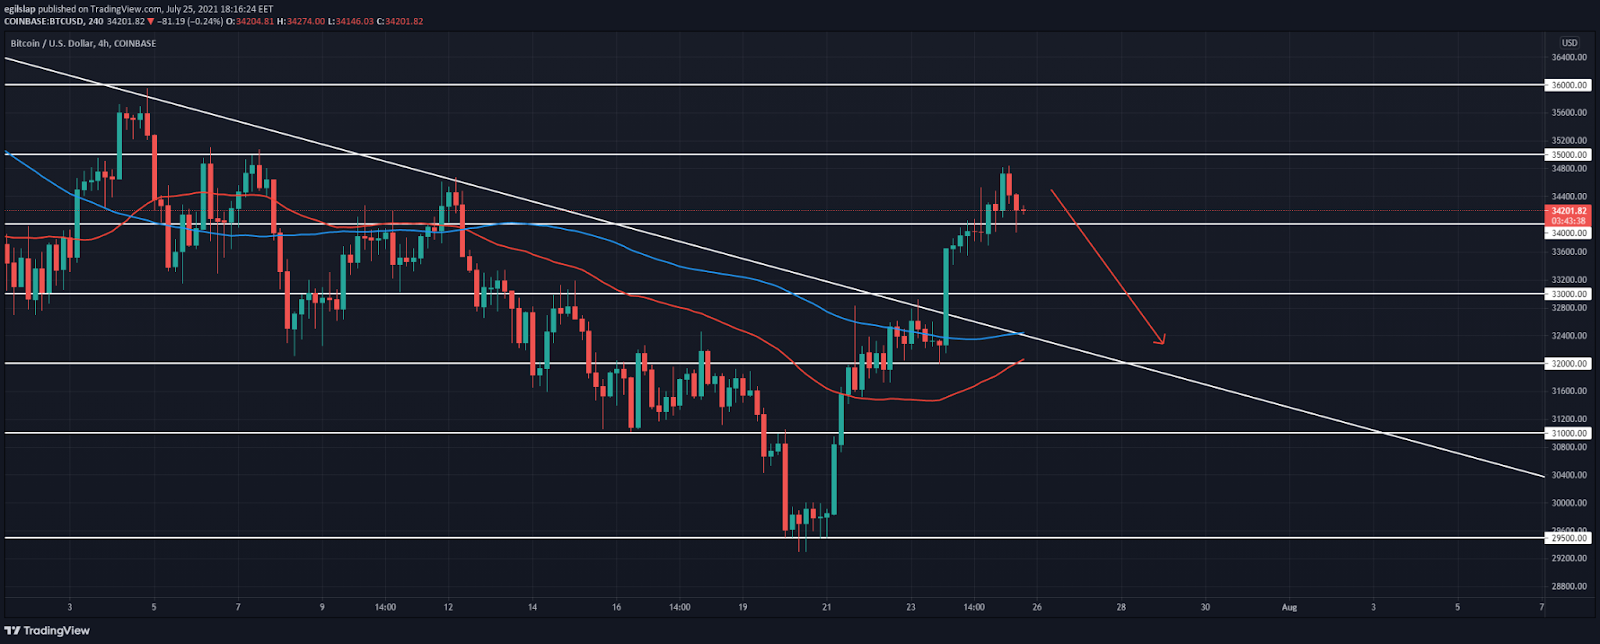 Bitcoin Price Analysis: BTC finds resistance below $35,000, ready to retrace?